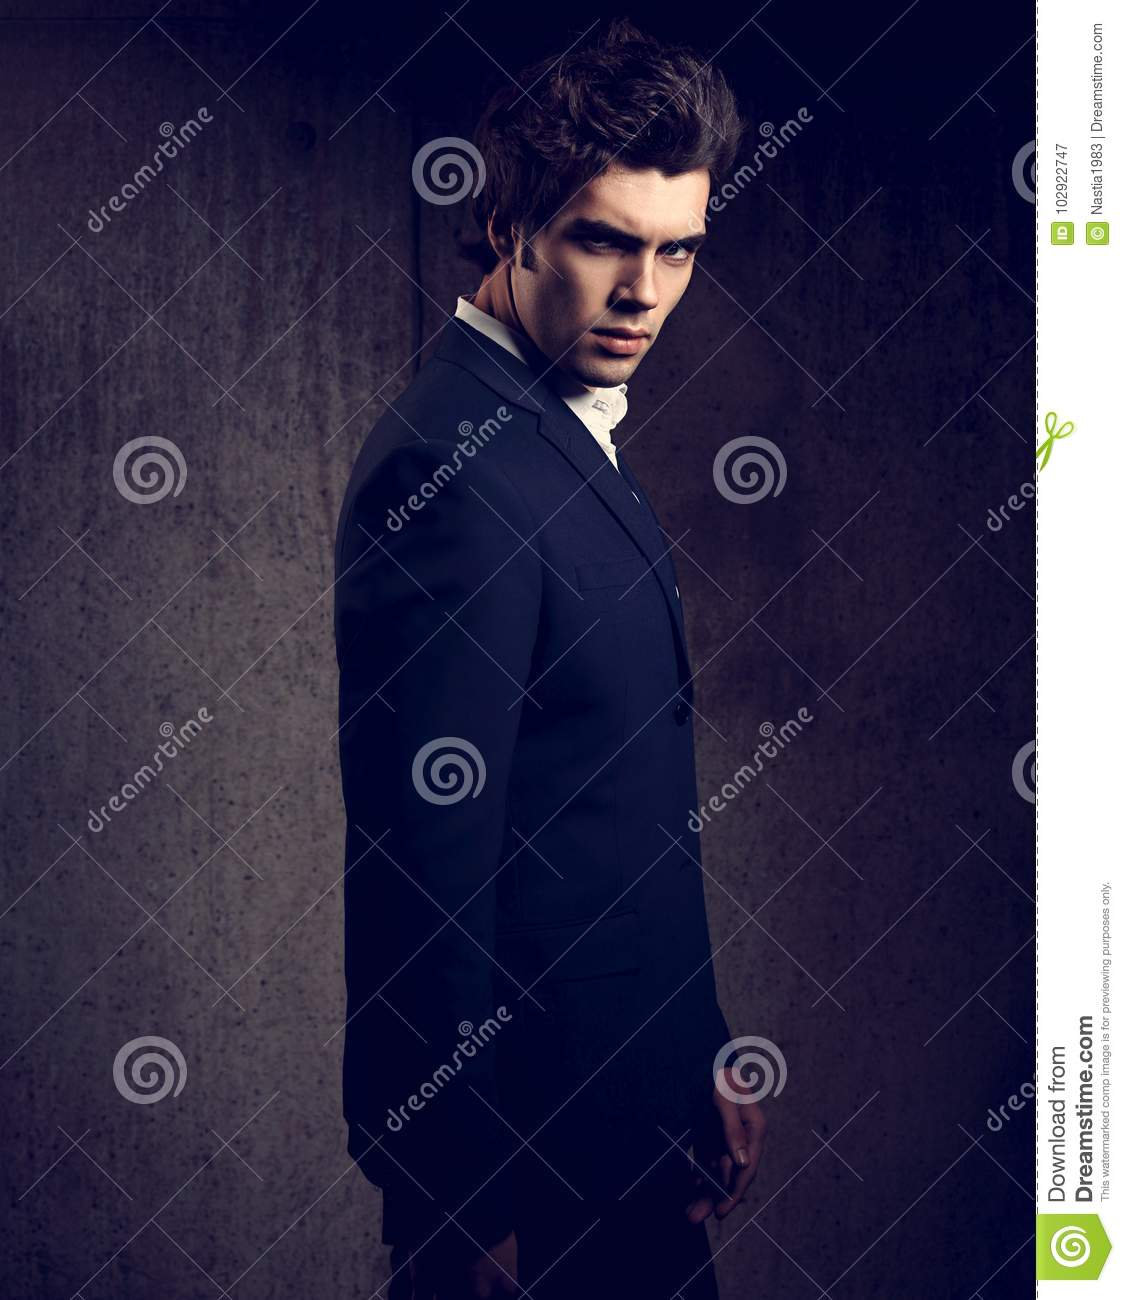 40fe3bbd handsome male model posing in blue fashion suit and white style shirt  looking down on dark shadow background. Toned portrait